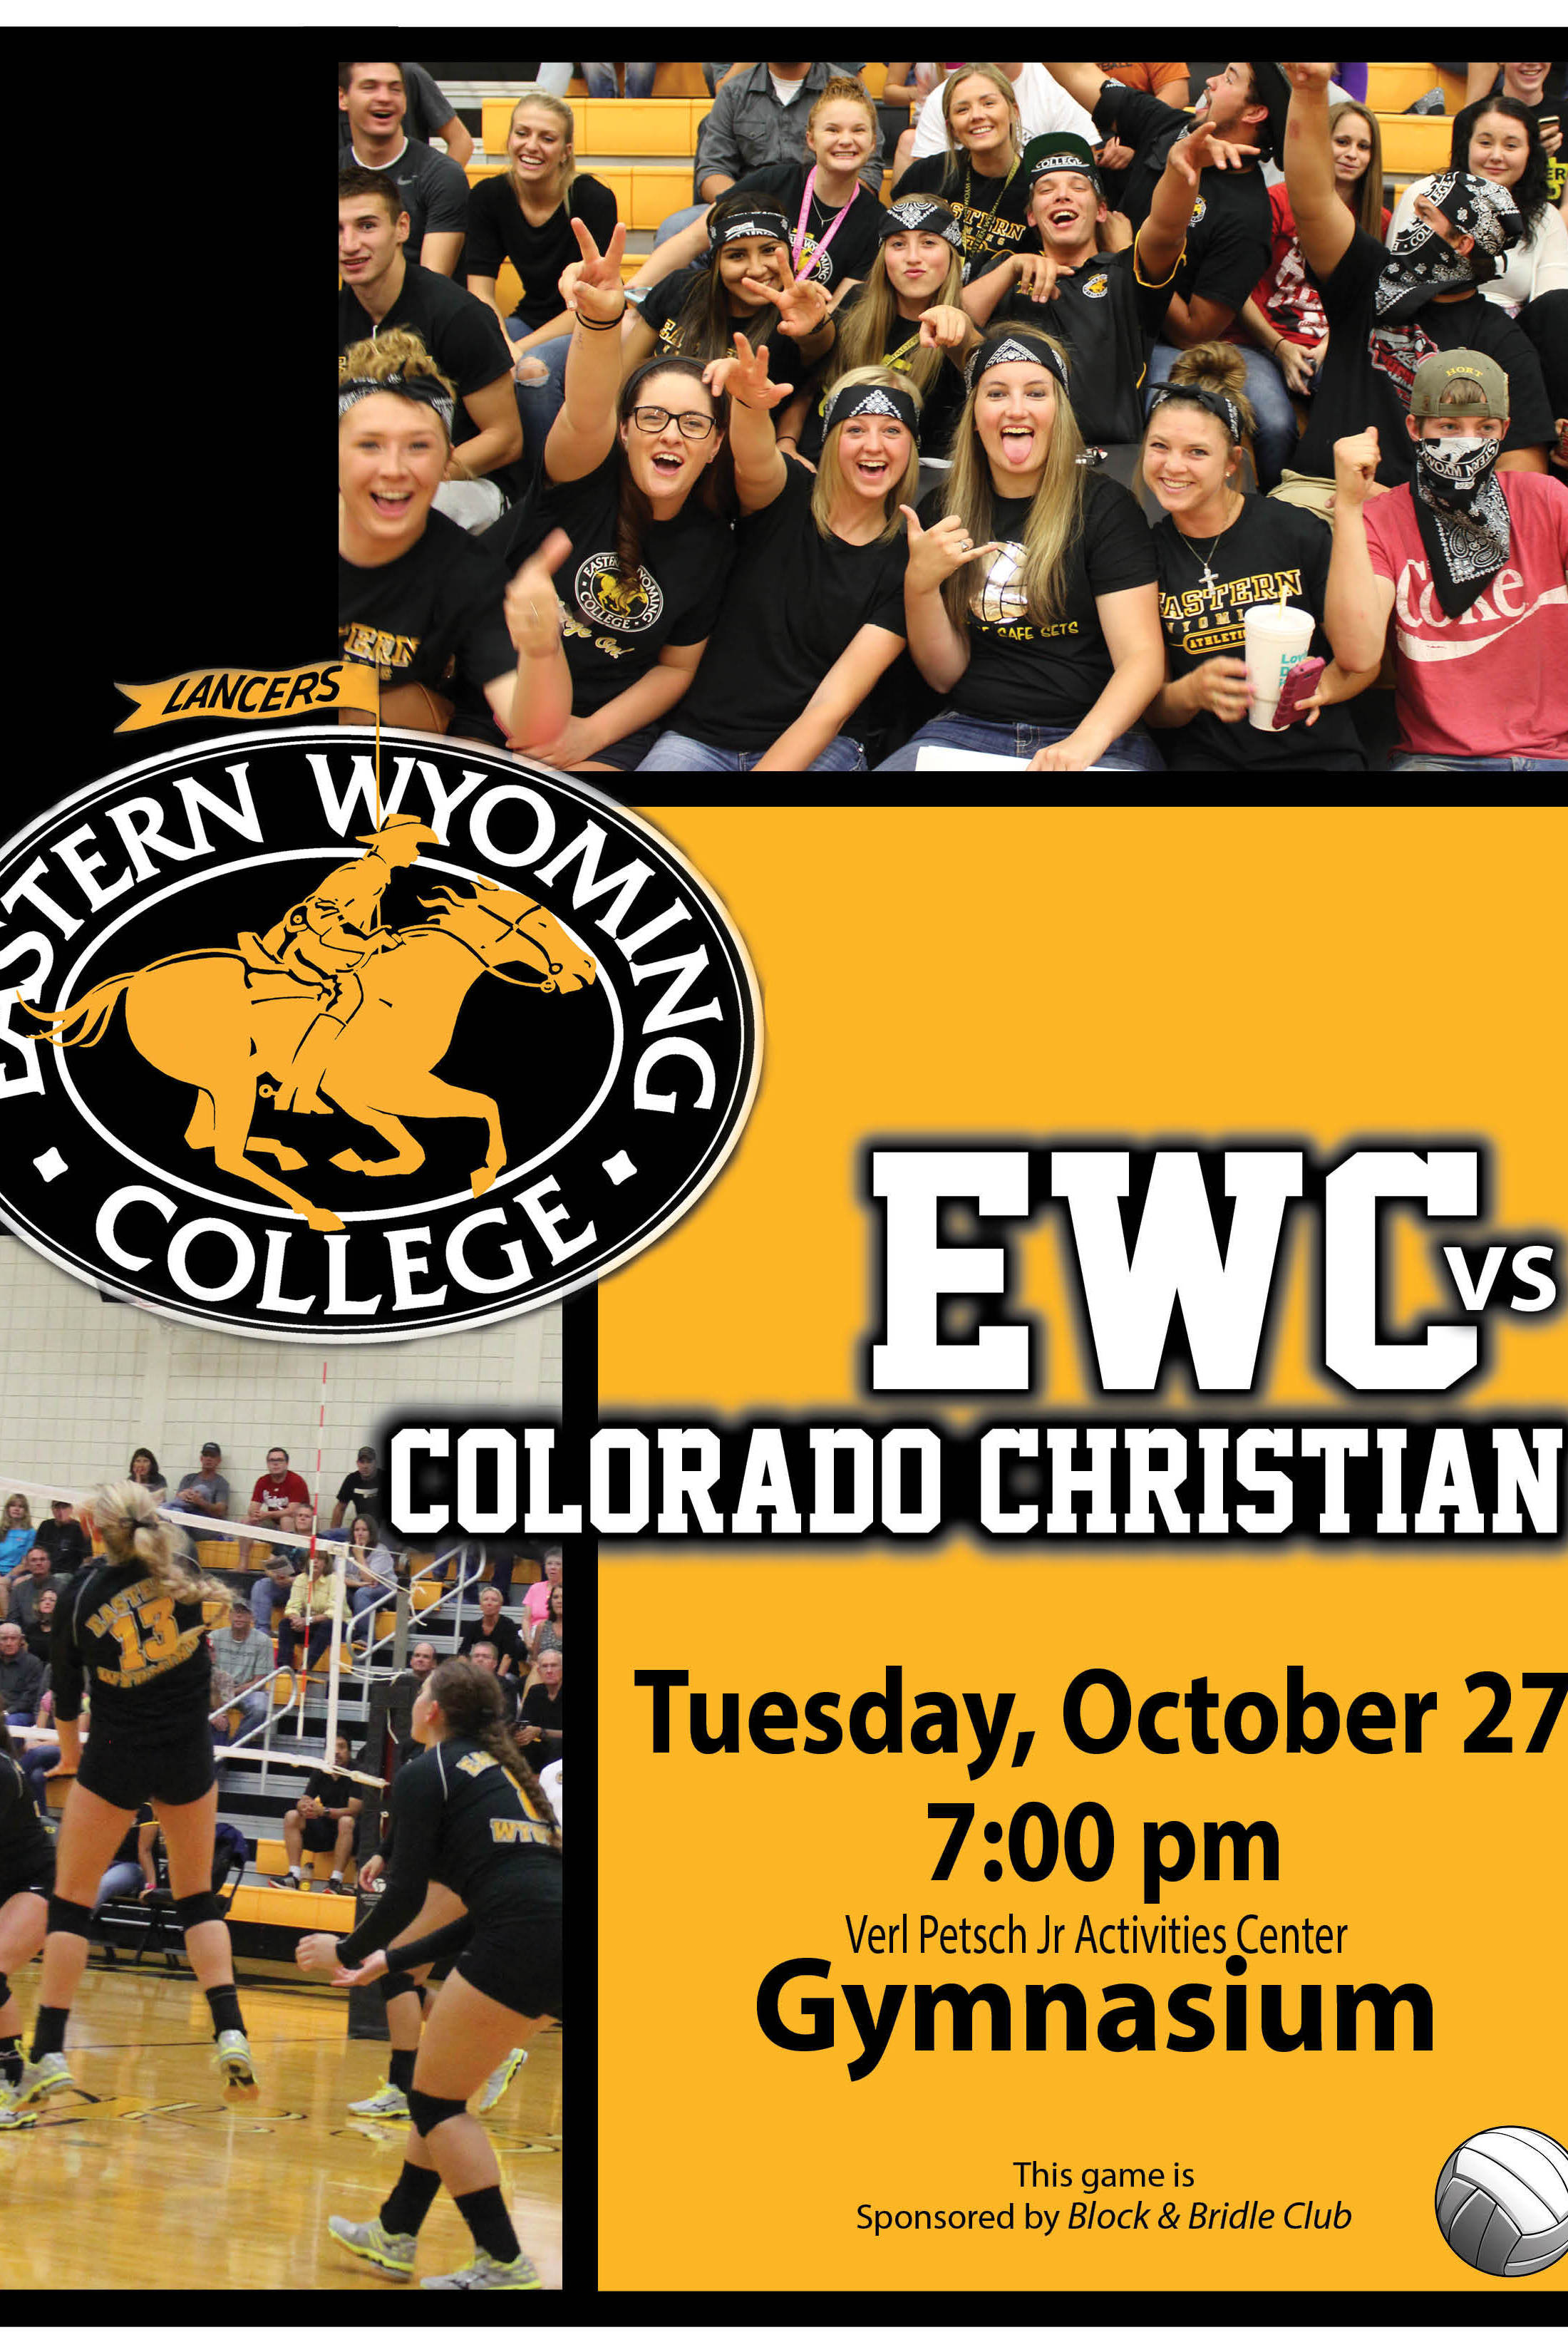 Women's Volleyball Game - EWC vs. Colorado Christian University-JV on ...